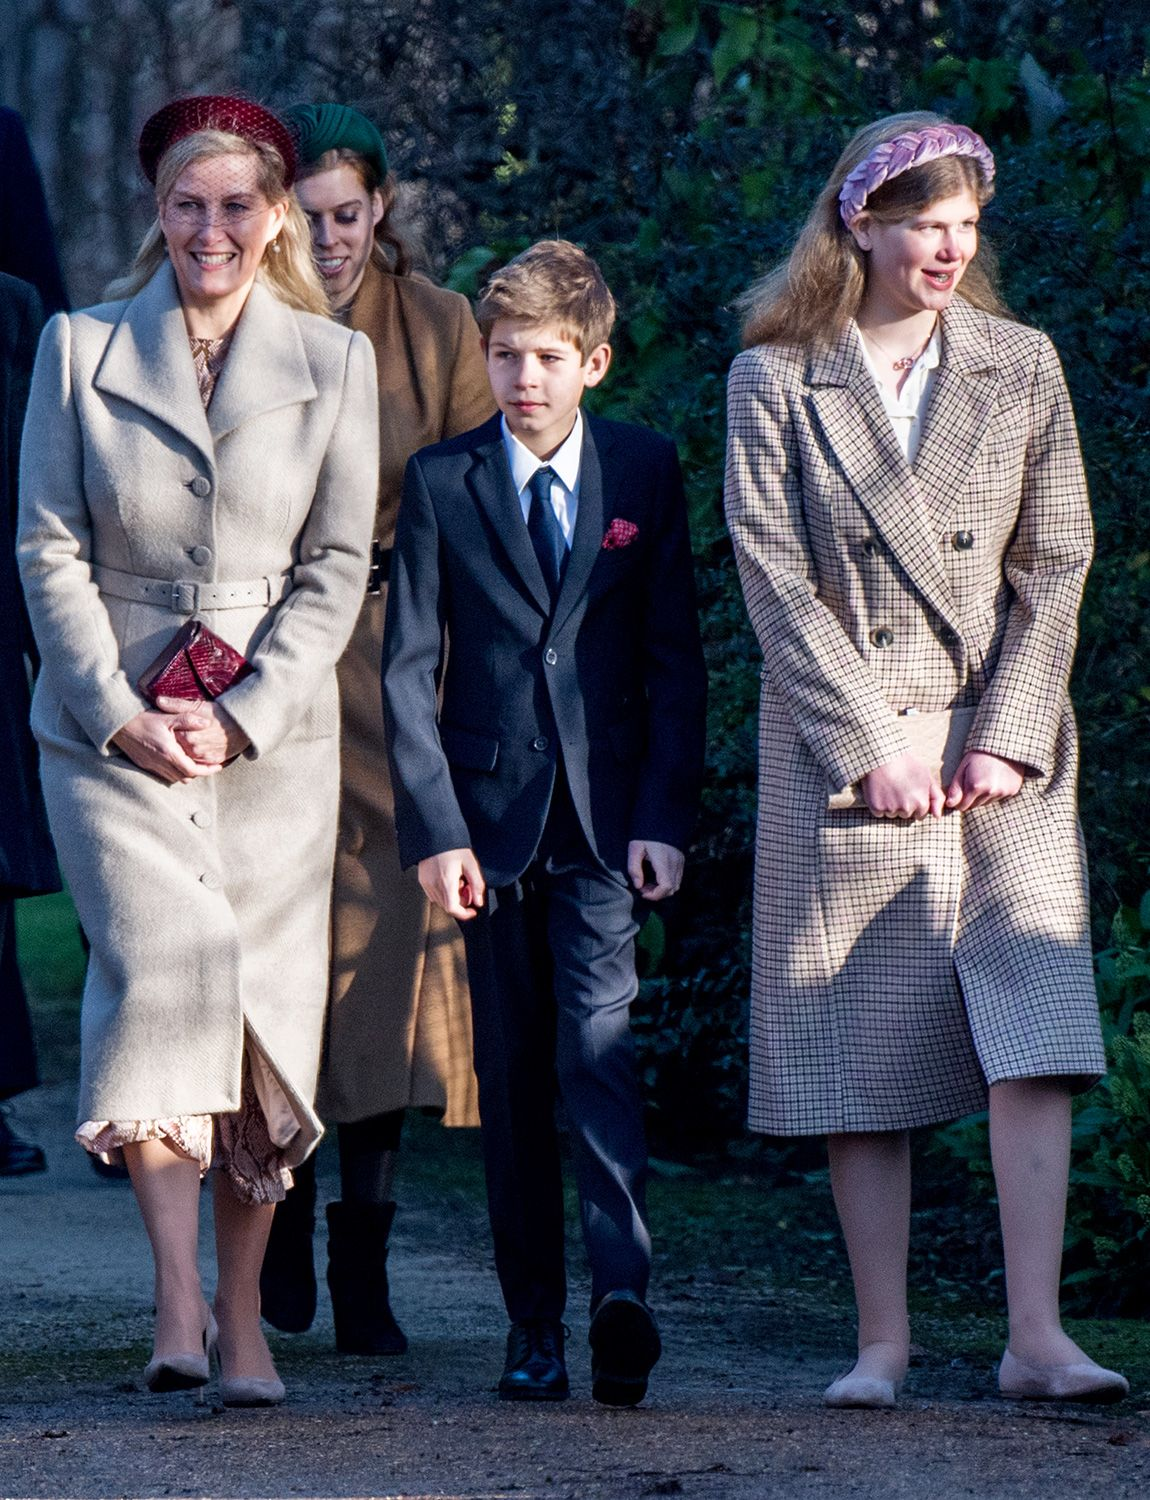 Pin on RoyaltyPrince Edward and Family